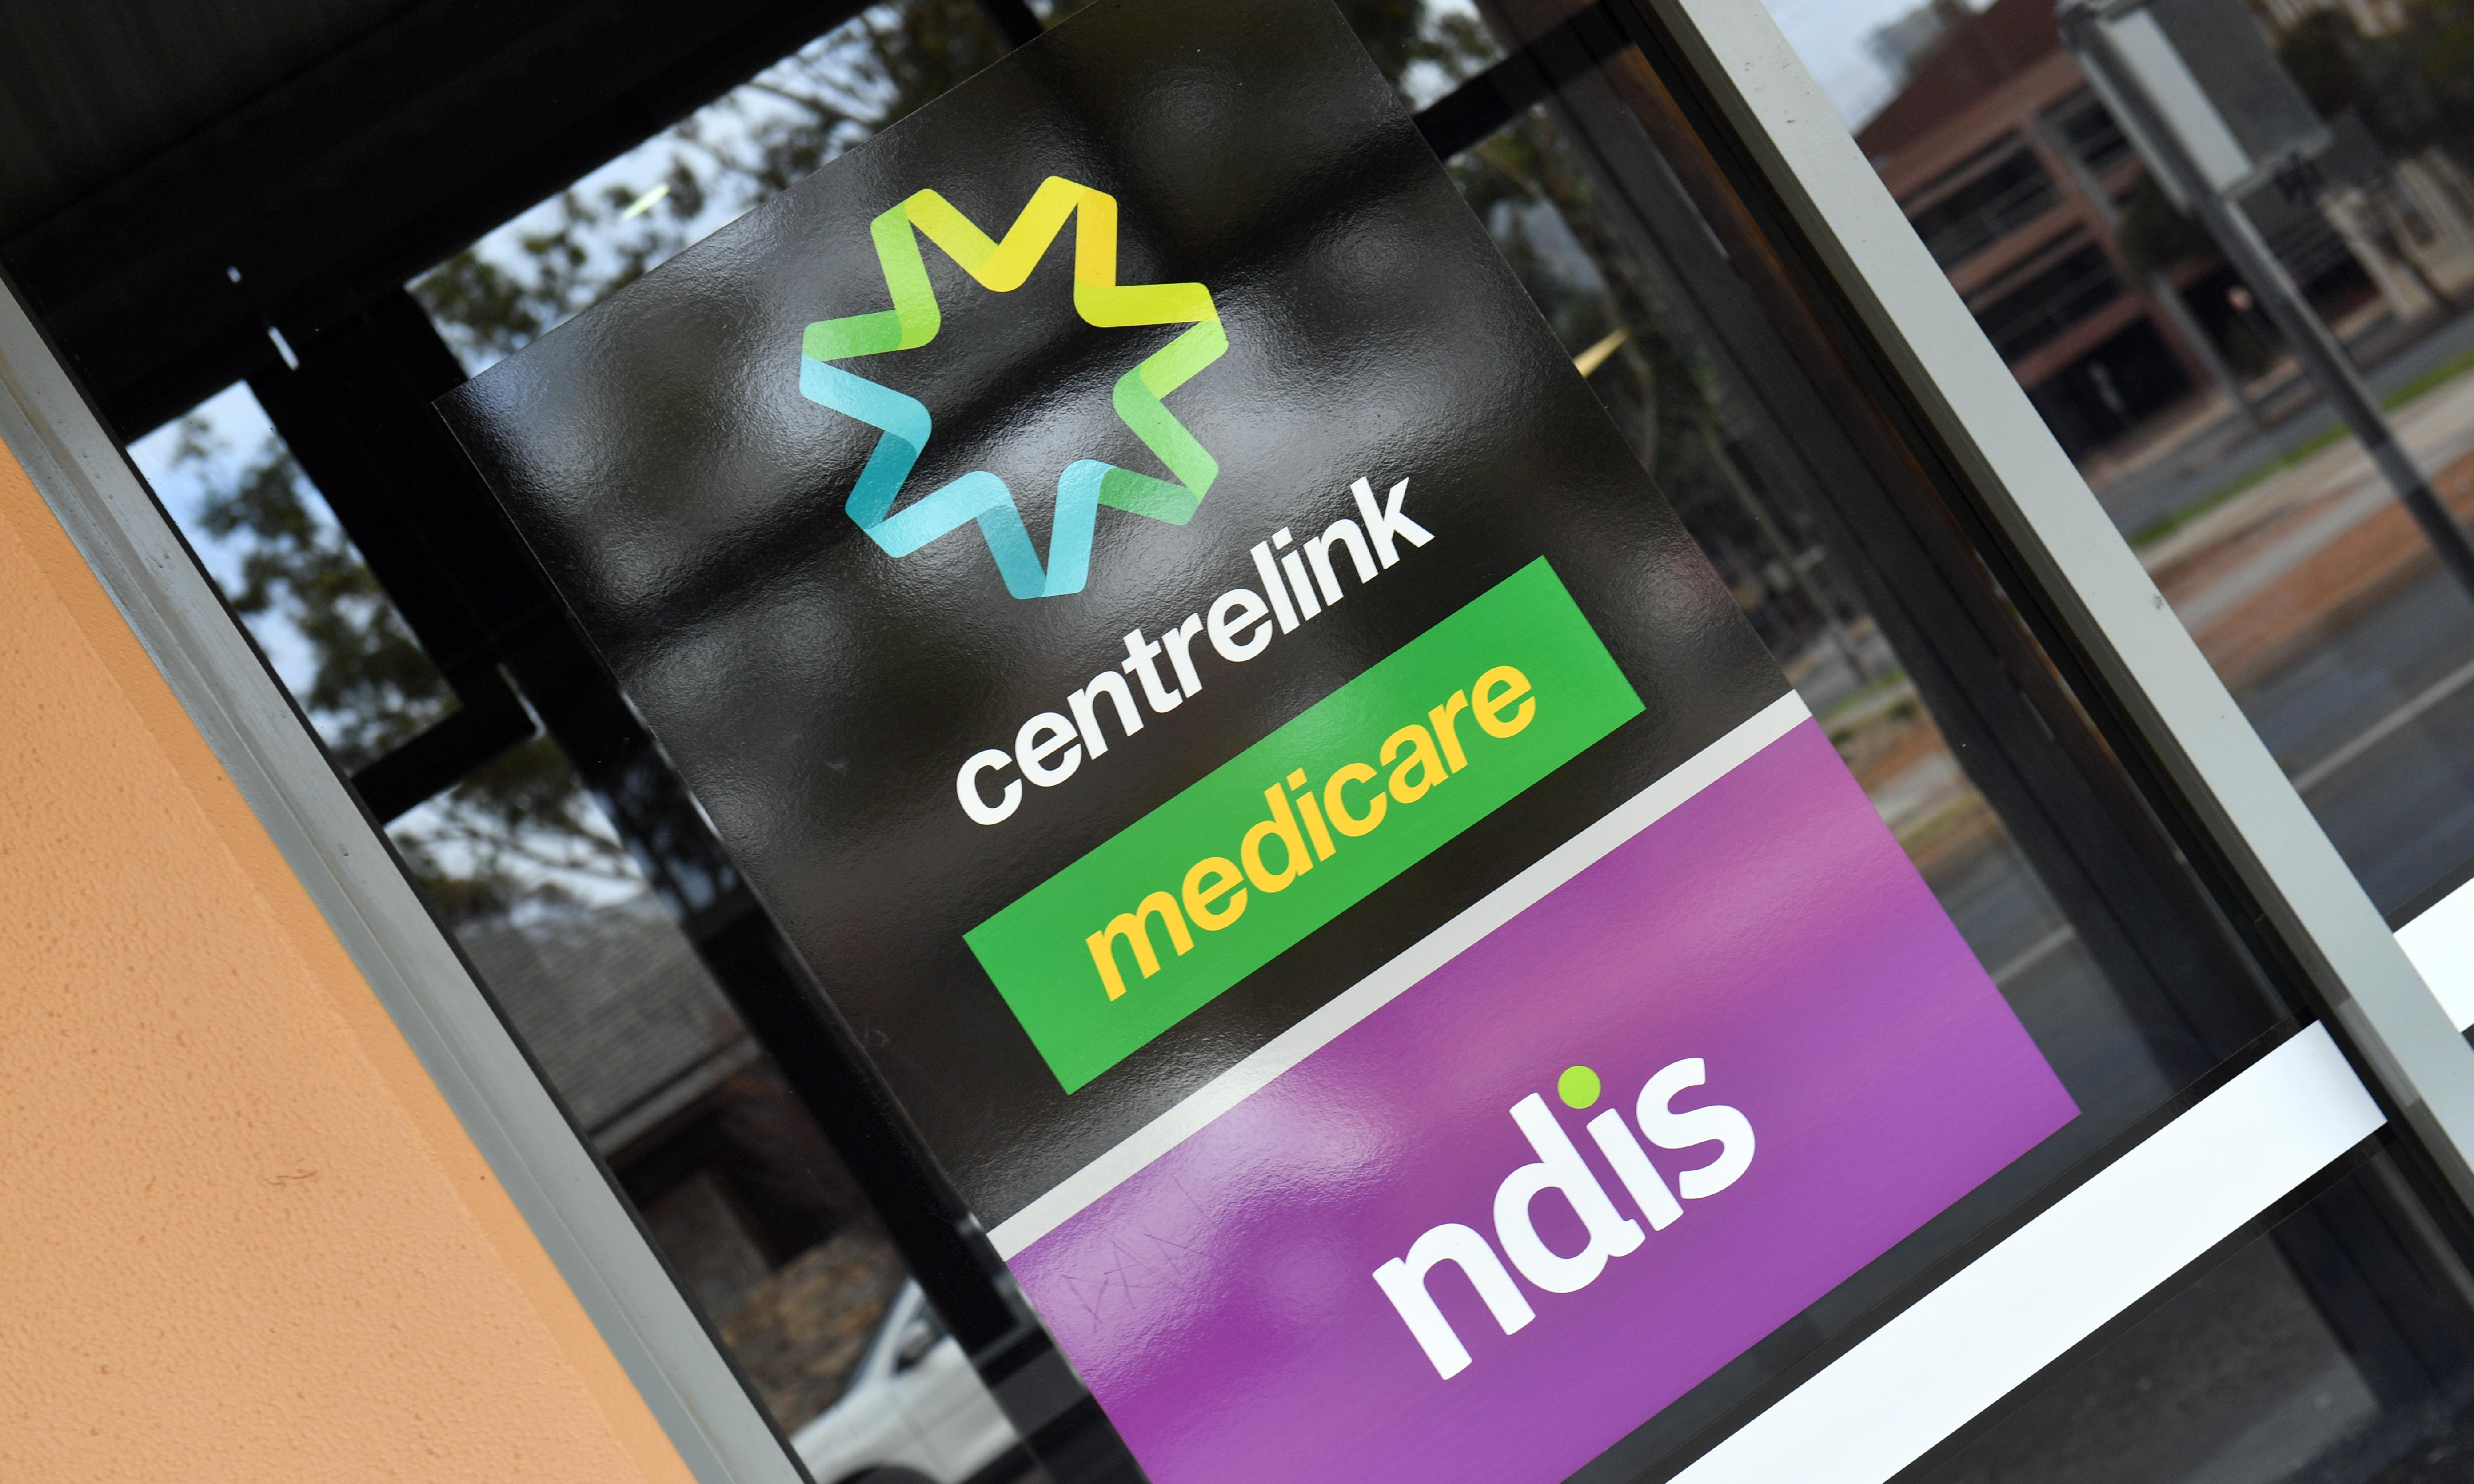 Australians locked out of NDIS because they declined invasive surgery, advocate finds